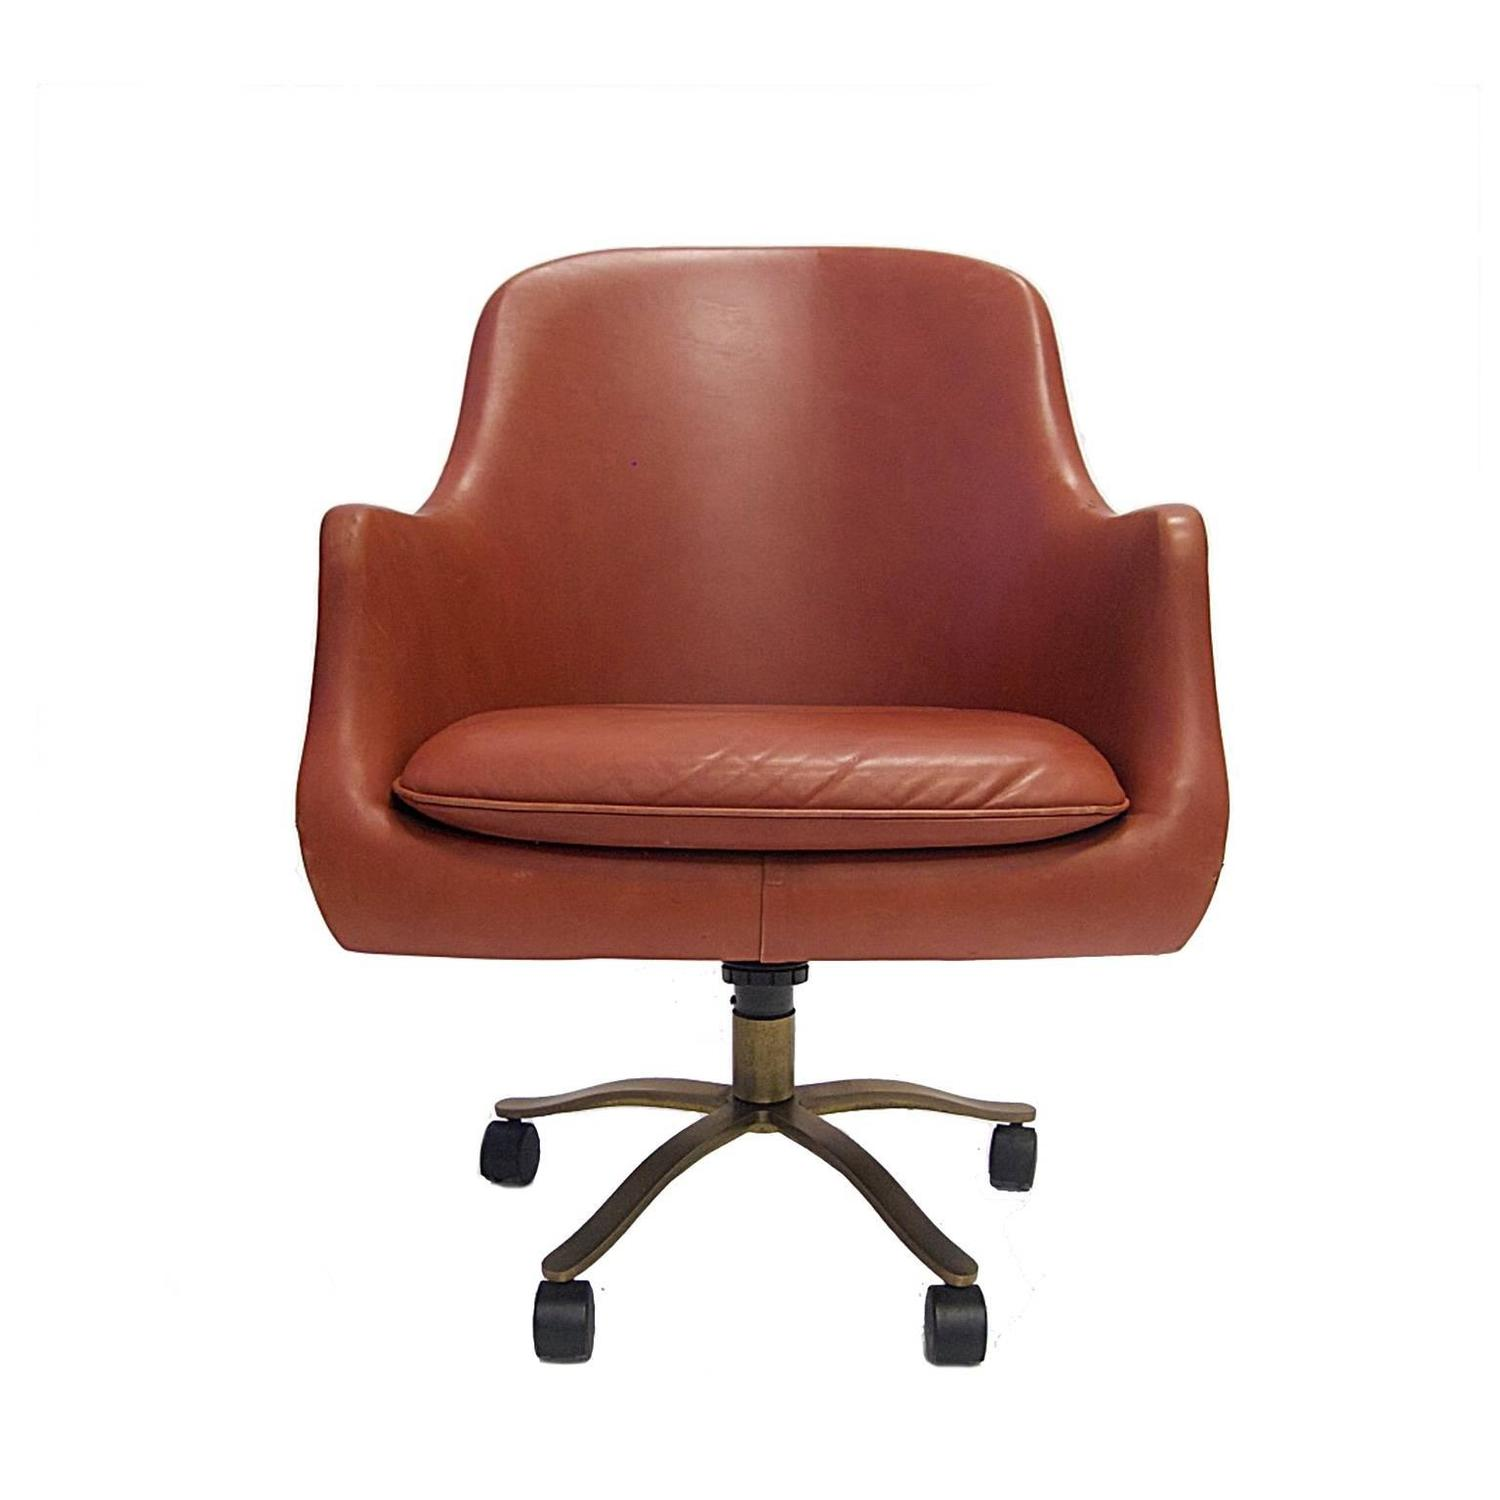 chair steel base with wheels pink tufted nico zographos red leather english office desk